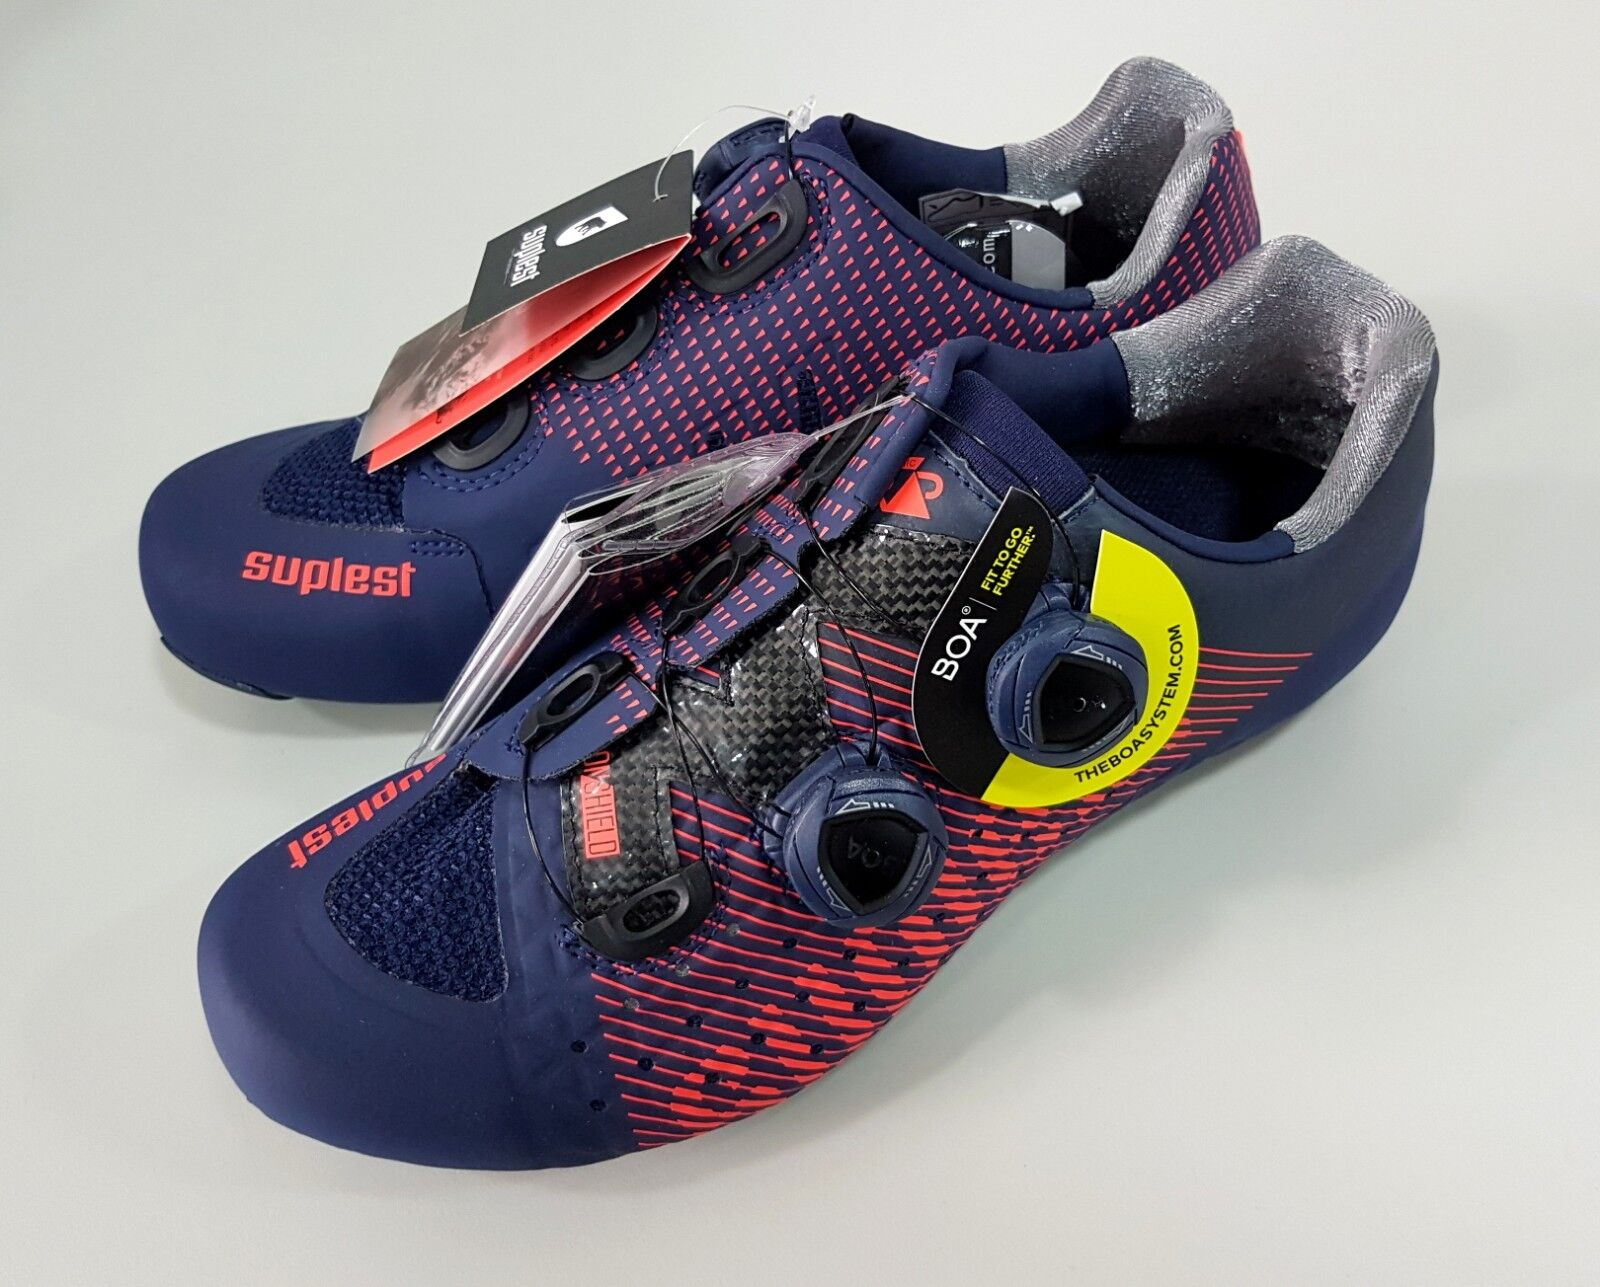 Suplest Edge 3 Pro Road Carbon Bicycle Cycling shoes  Size 43.5 Navy Coral  all products get up to 34% off